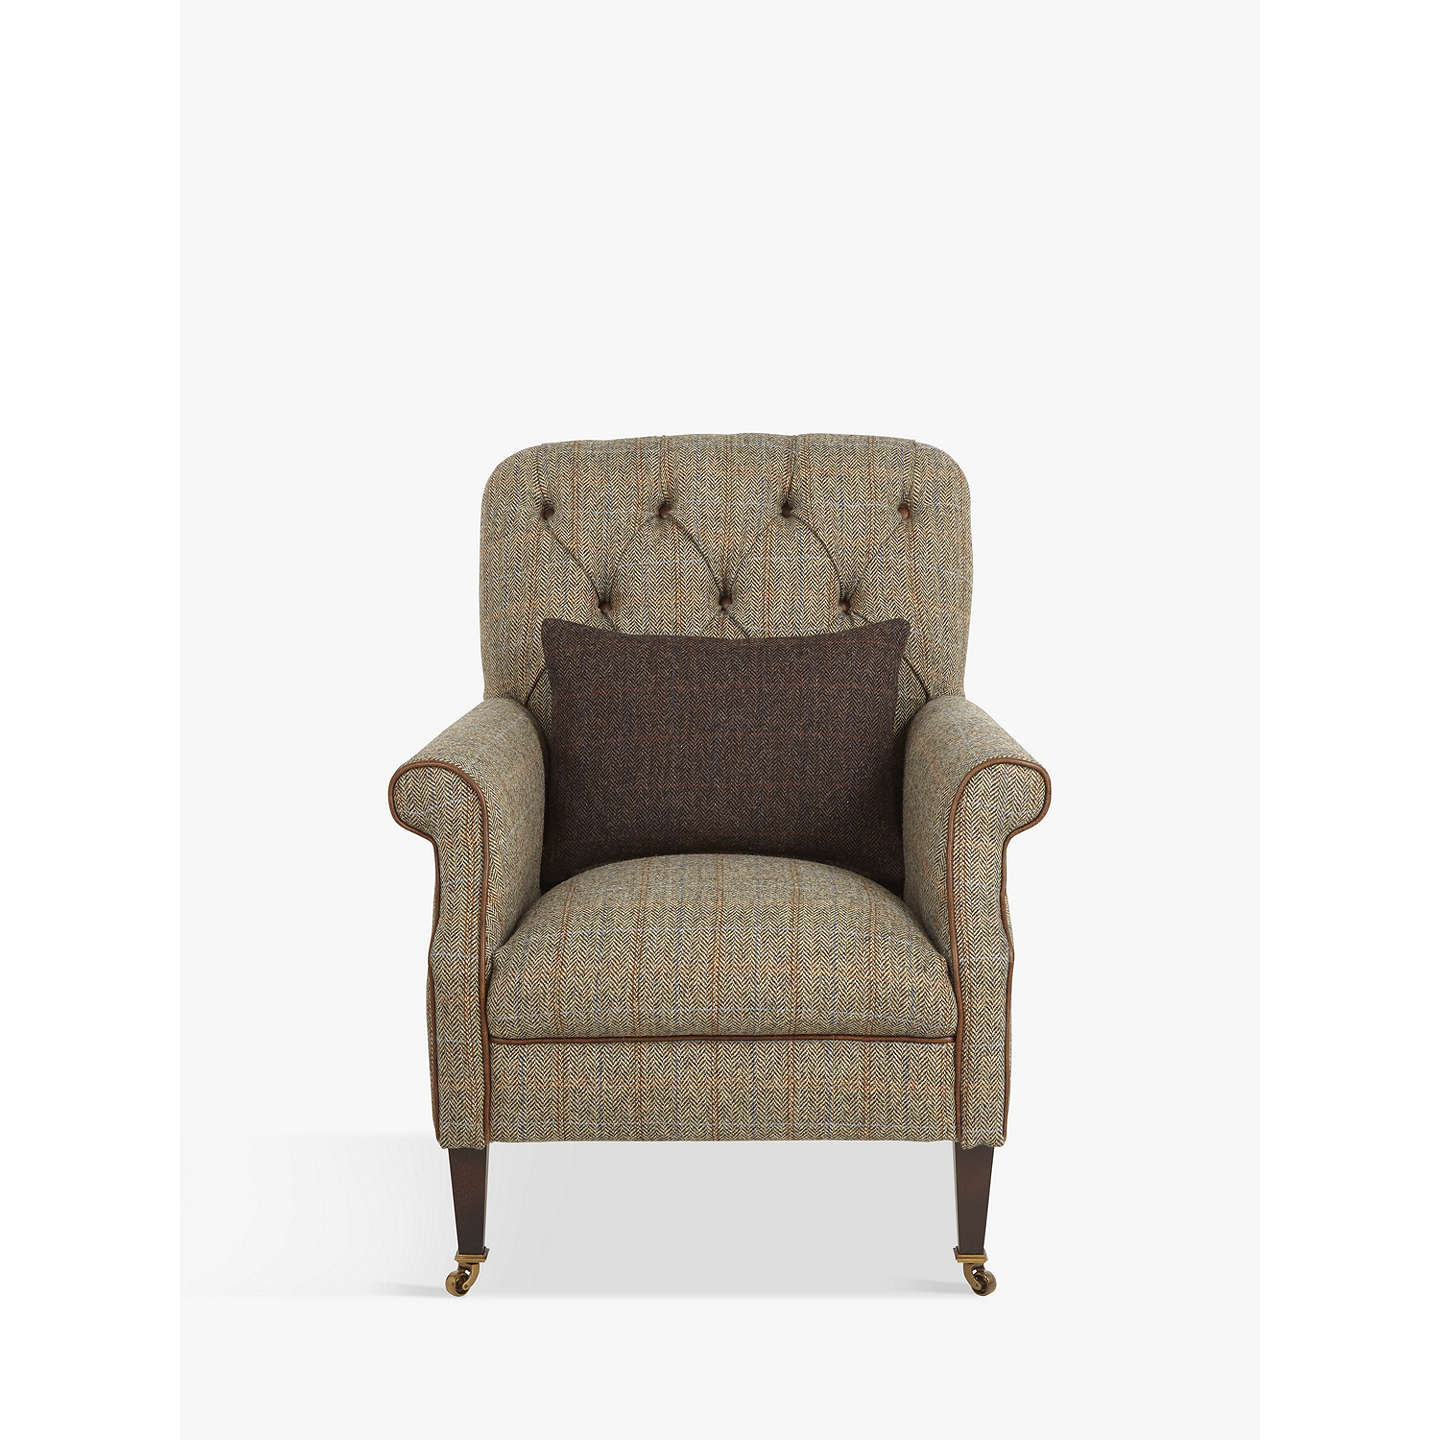 club chairs the chair simpli grey fabric dysart home tweed arm accent p axcchr